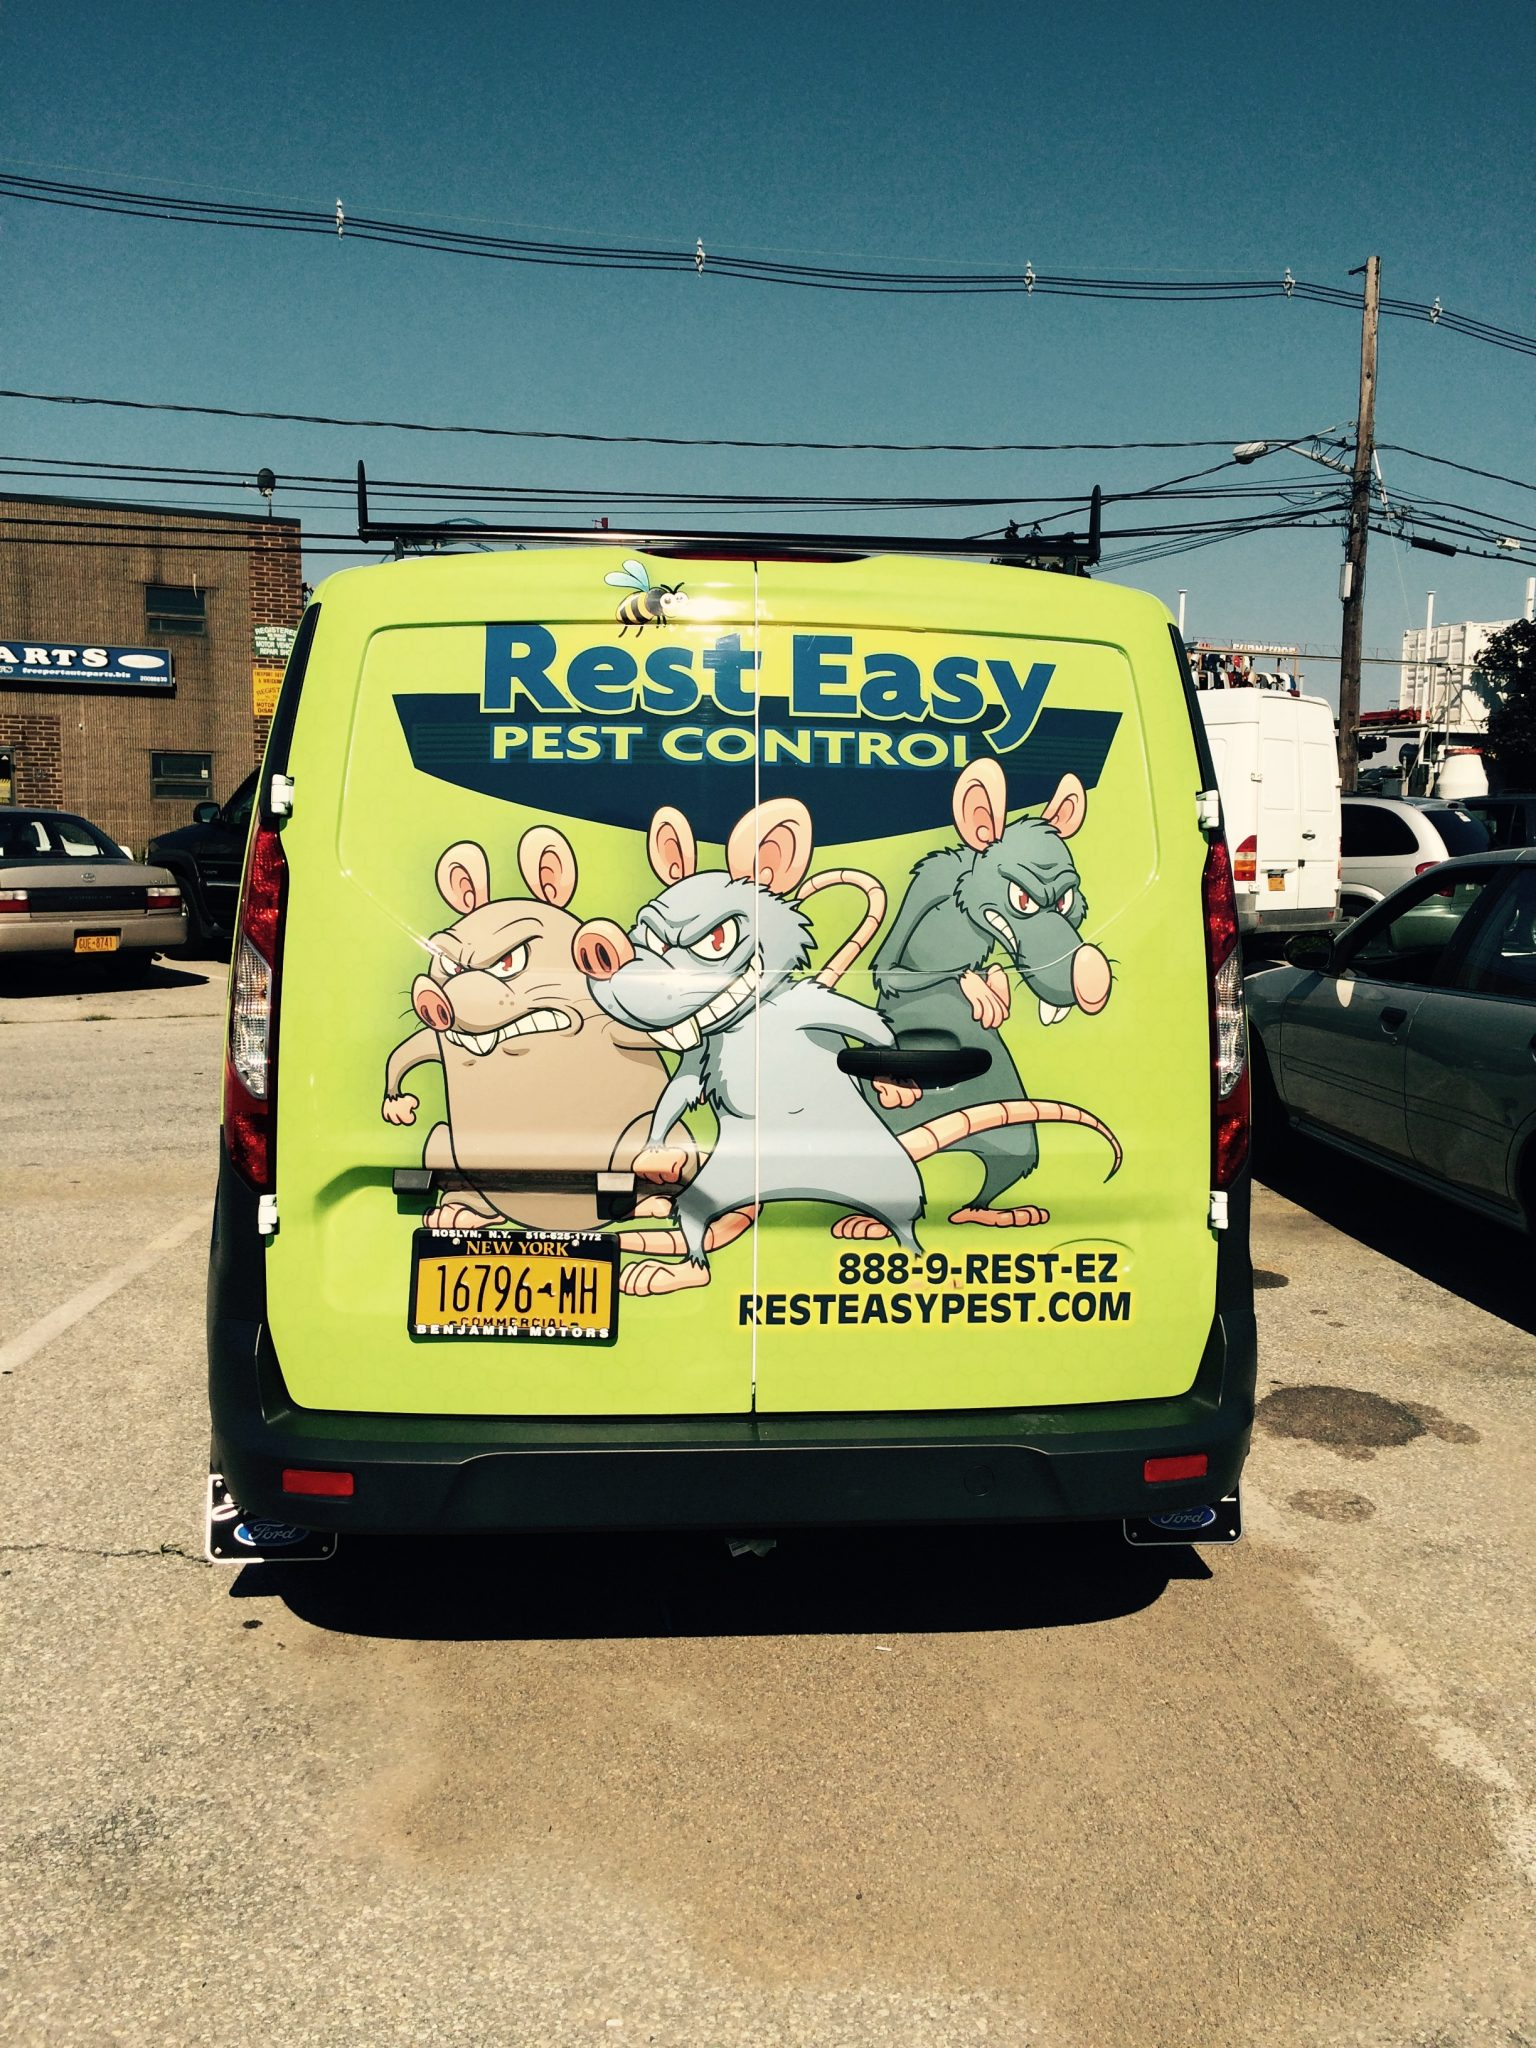 Pest Control Services Photos Nyc Amp Long Island Rest